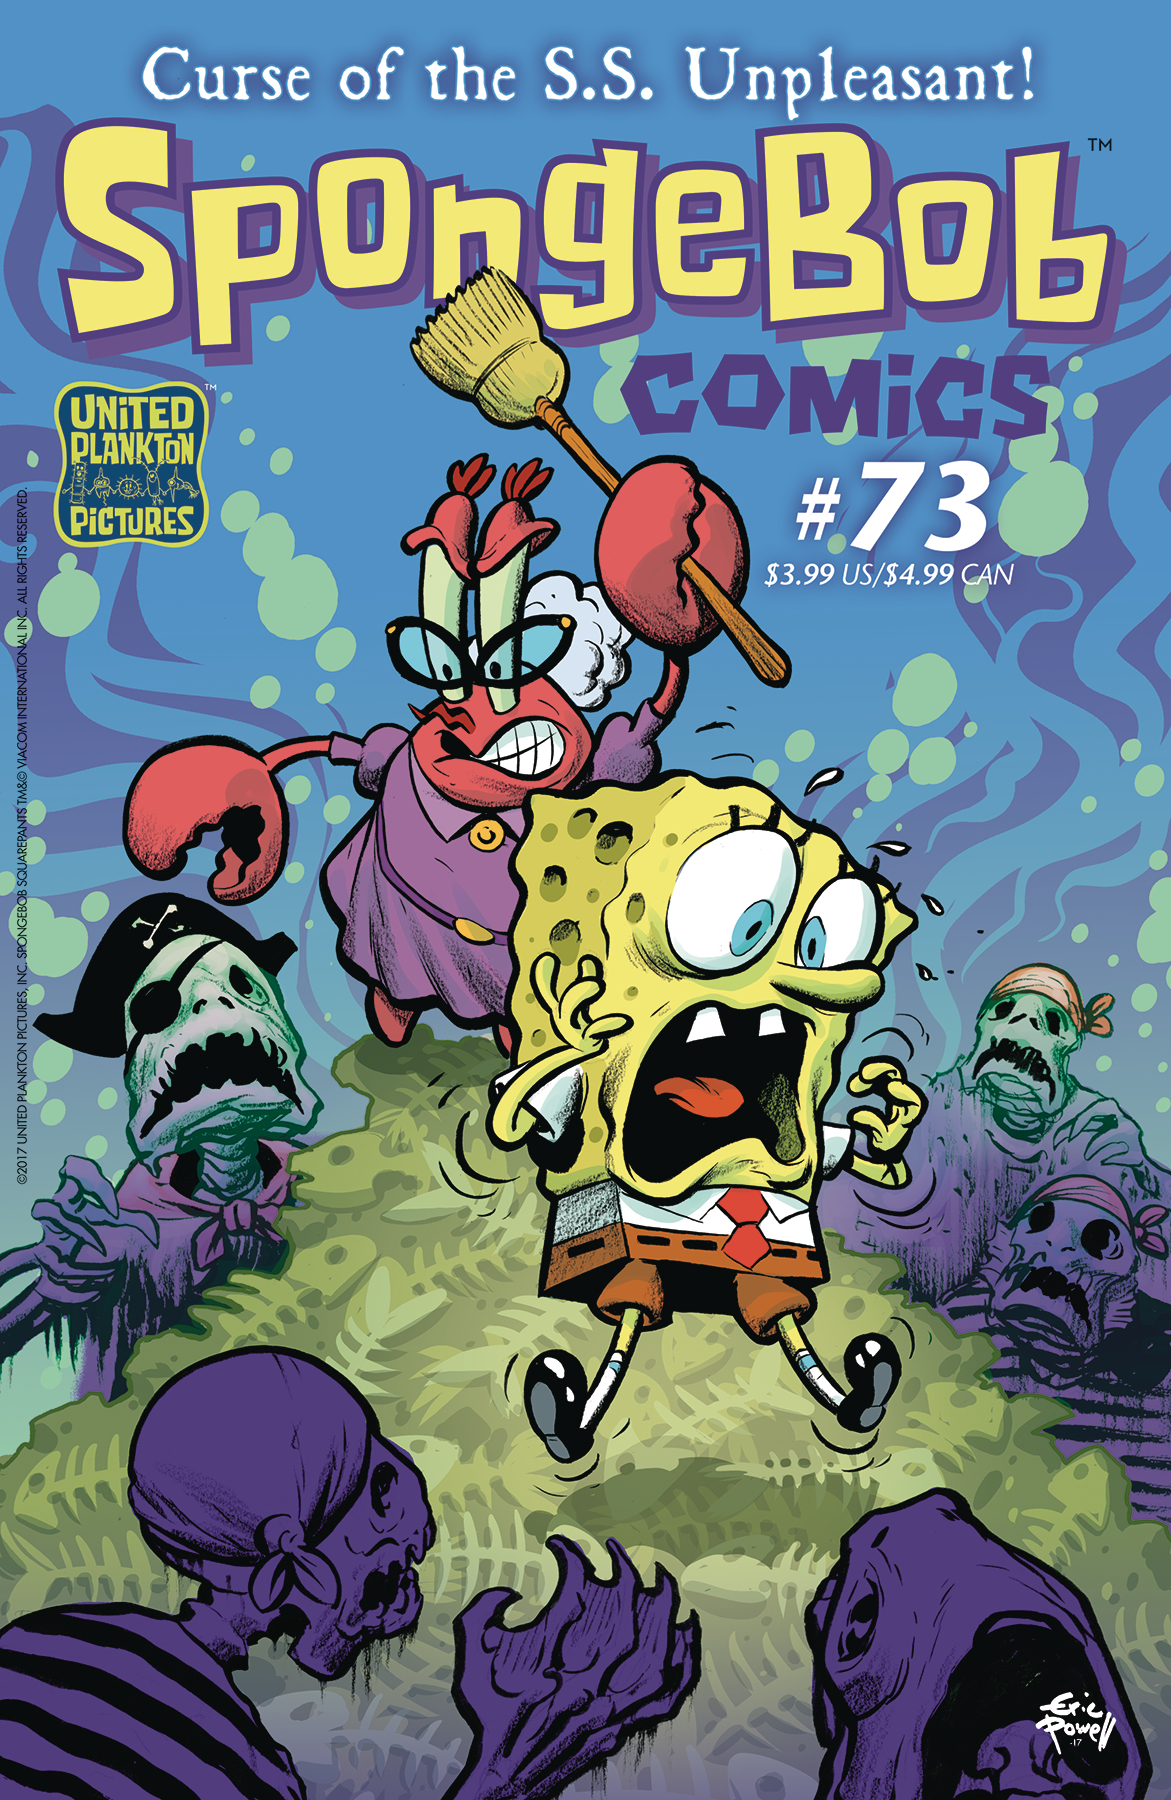 SPONGEBOB COMICS #73